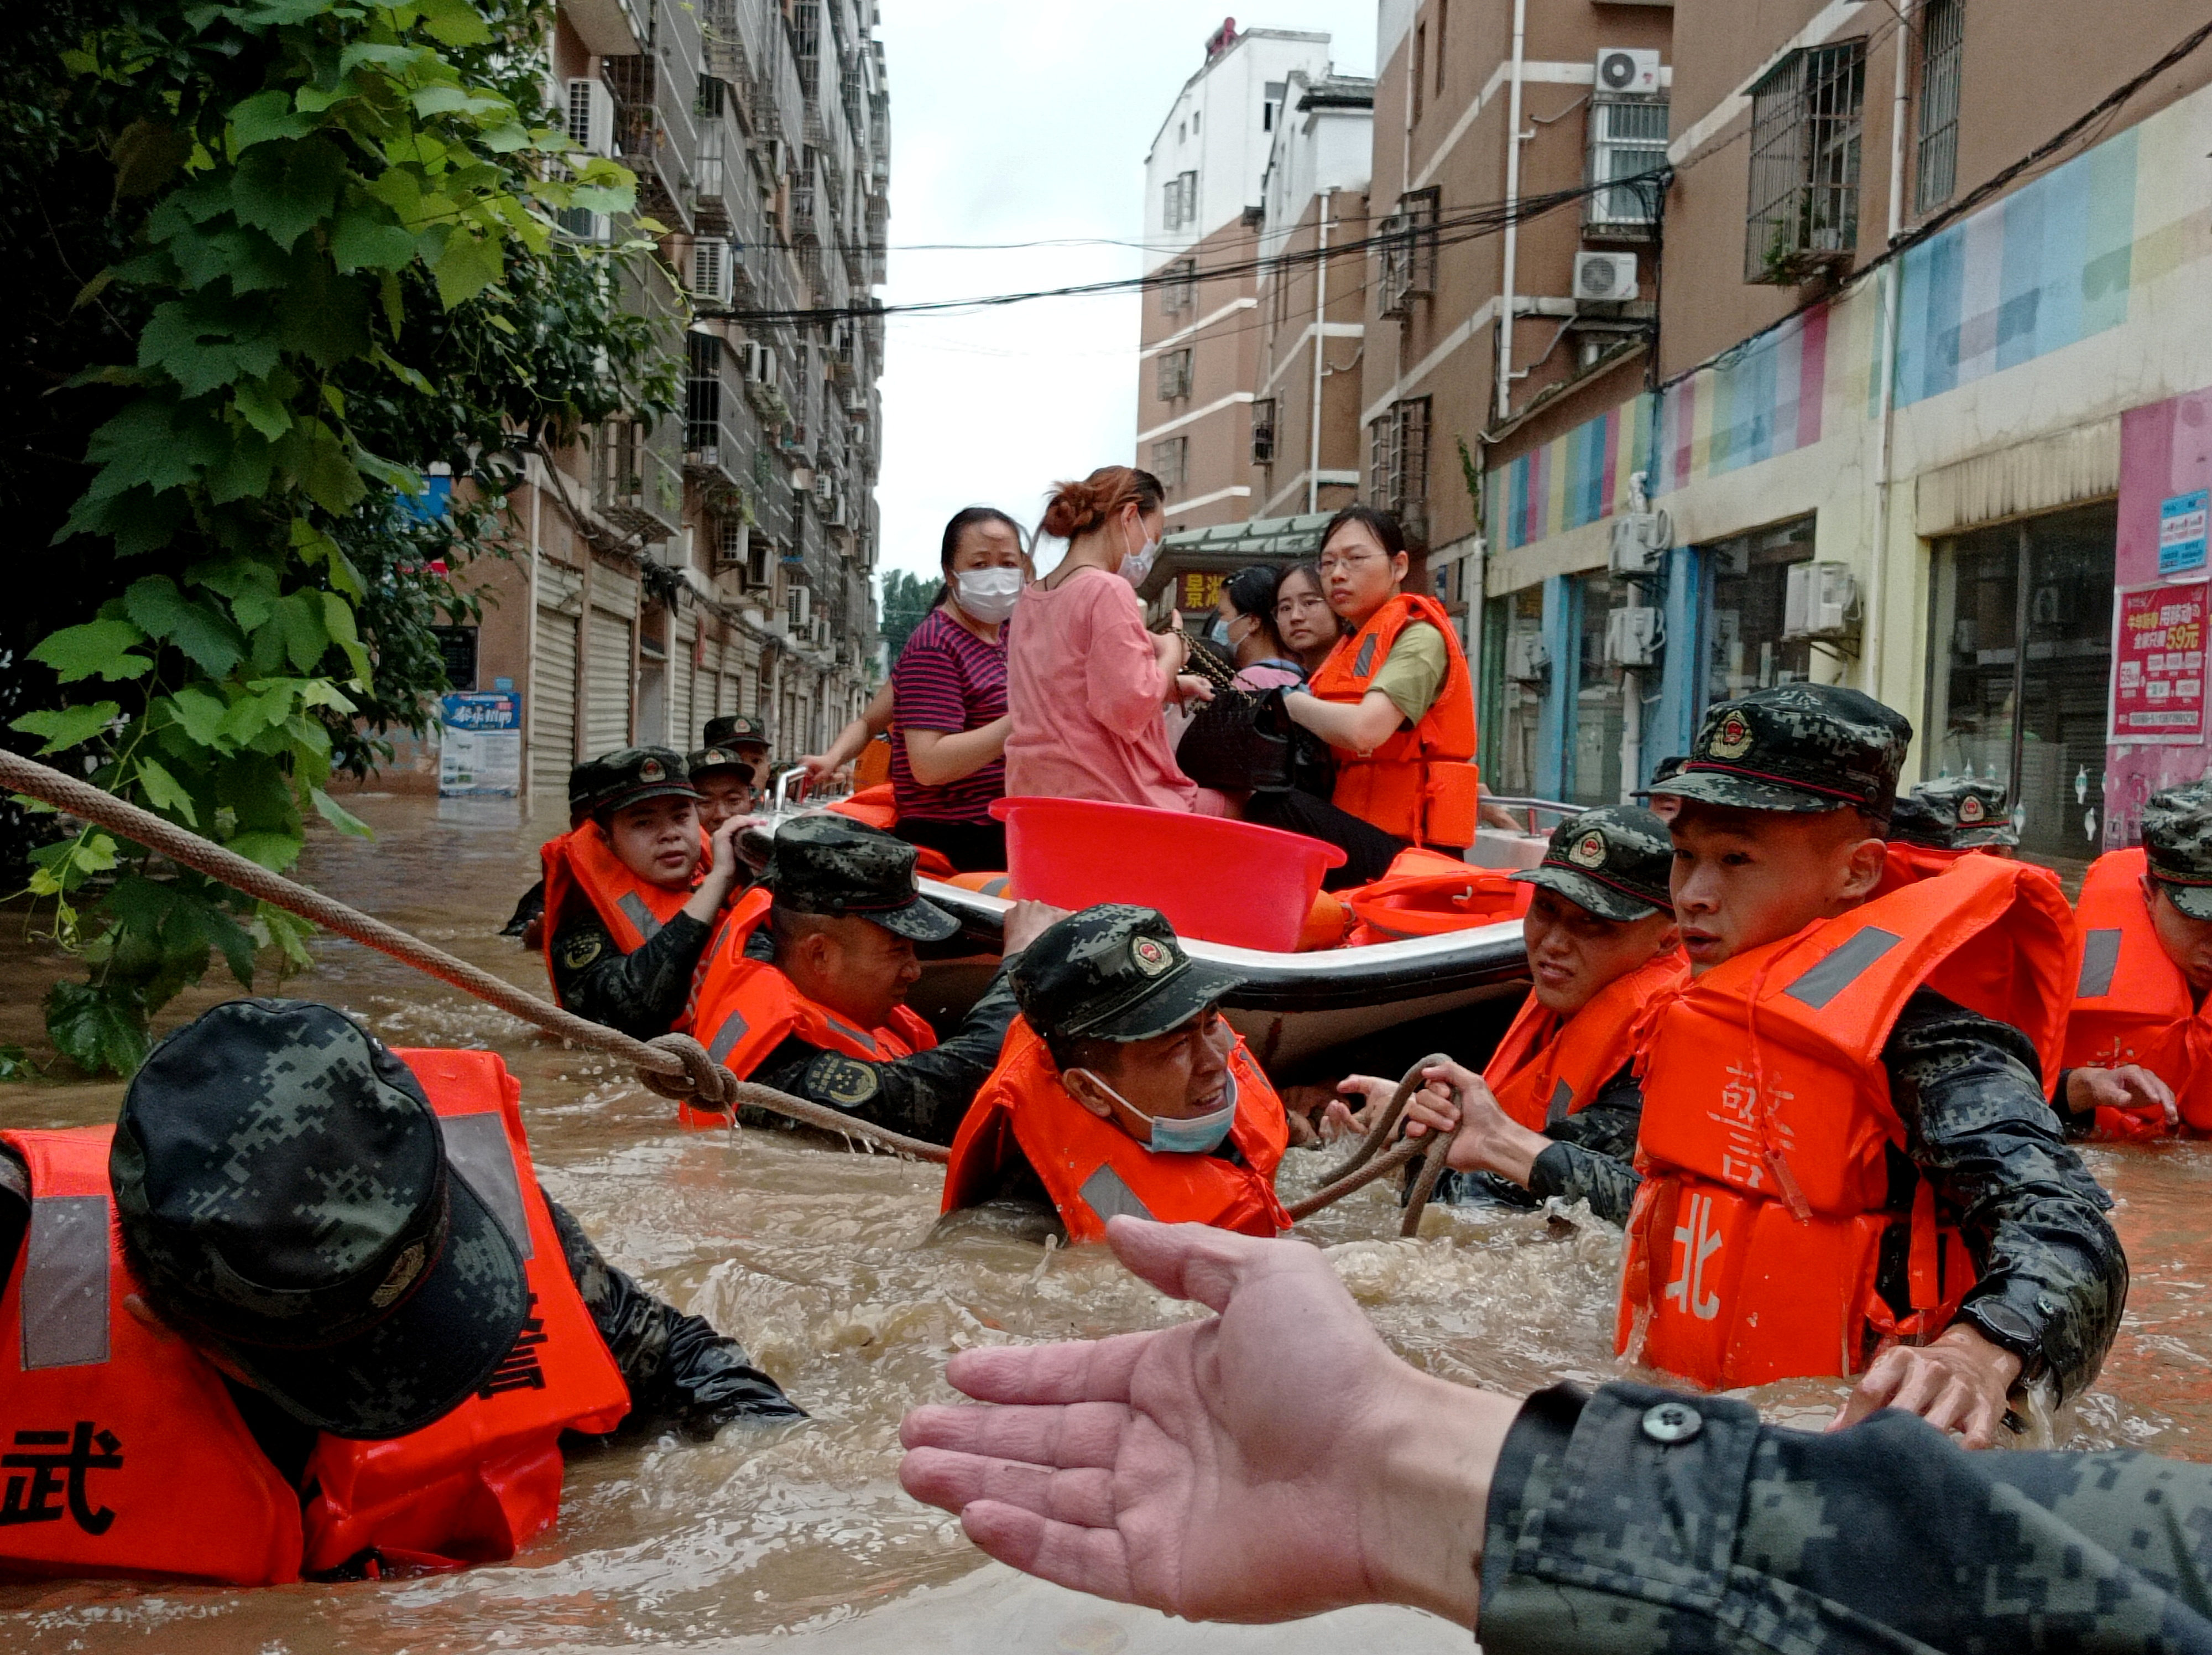 Paramilitary police officers evacuate residents stranded by floodwaters with a boat following heavy rainfall in Hedian town of Suizhou, Hubei province, China August 12, 2021. cnsphoto via REUTERS